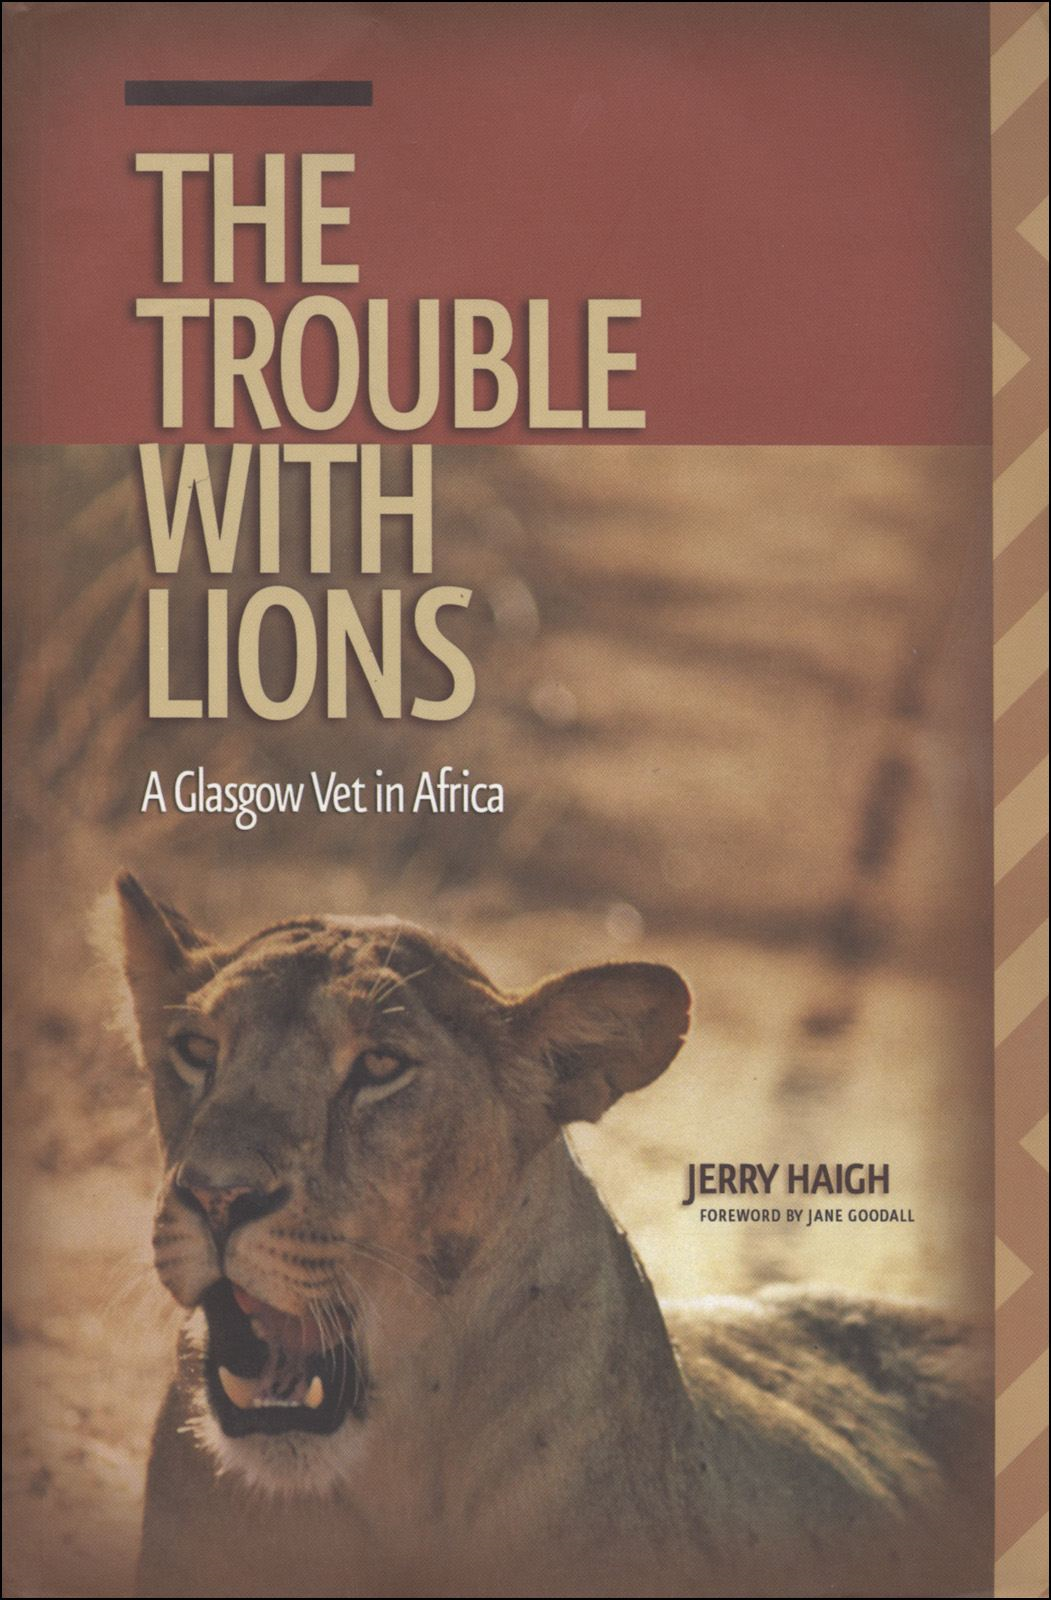 The Trouble with Lions: A Glasgow Vet in Africa